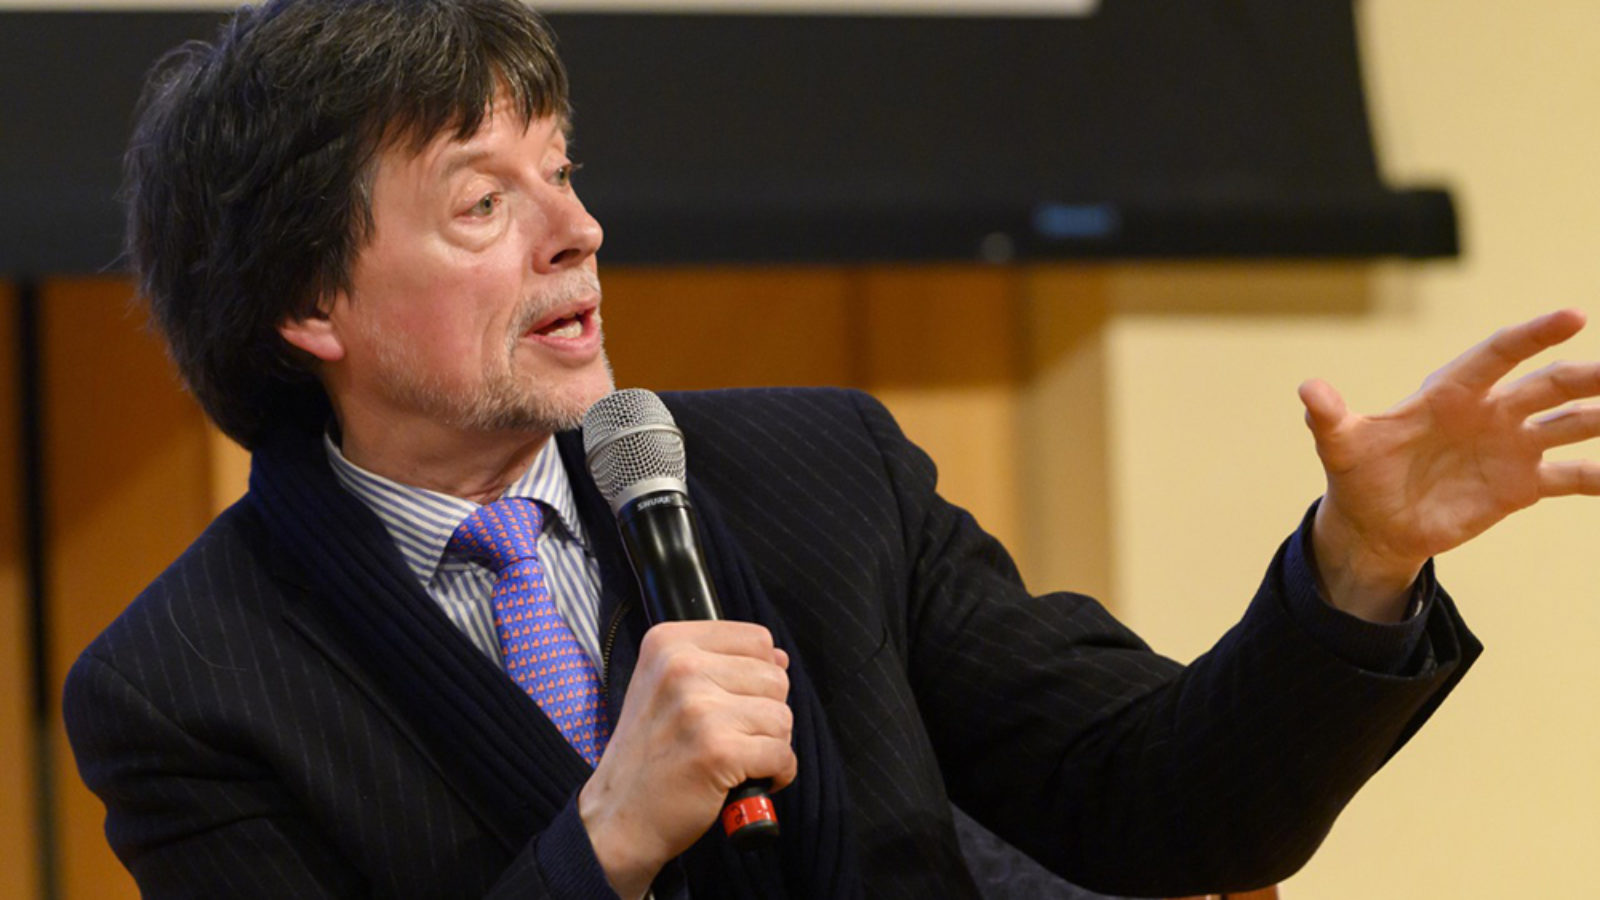 Ken Burns gesturing and holding a microphone